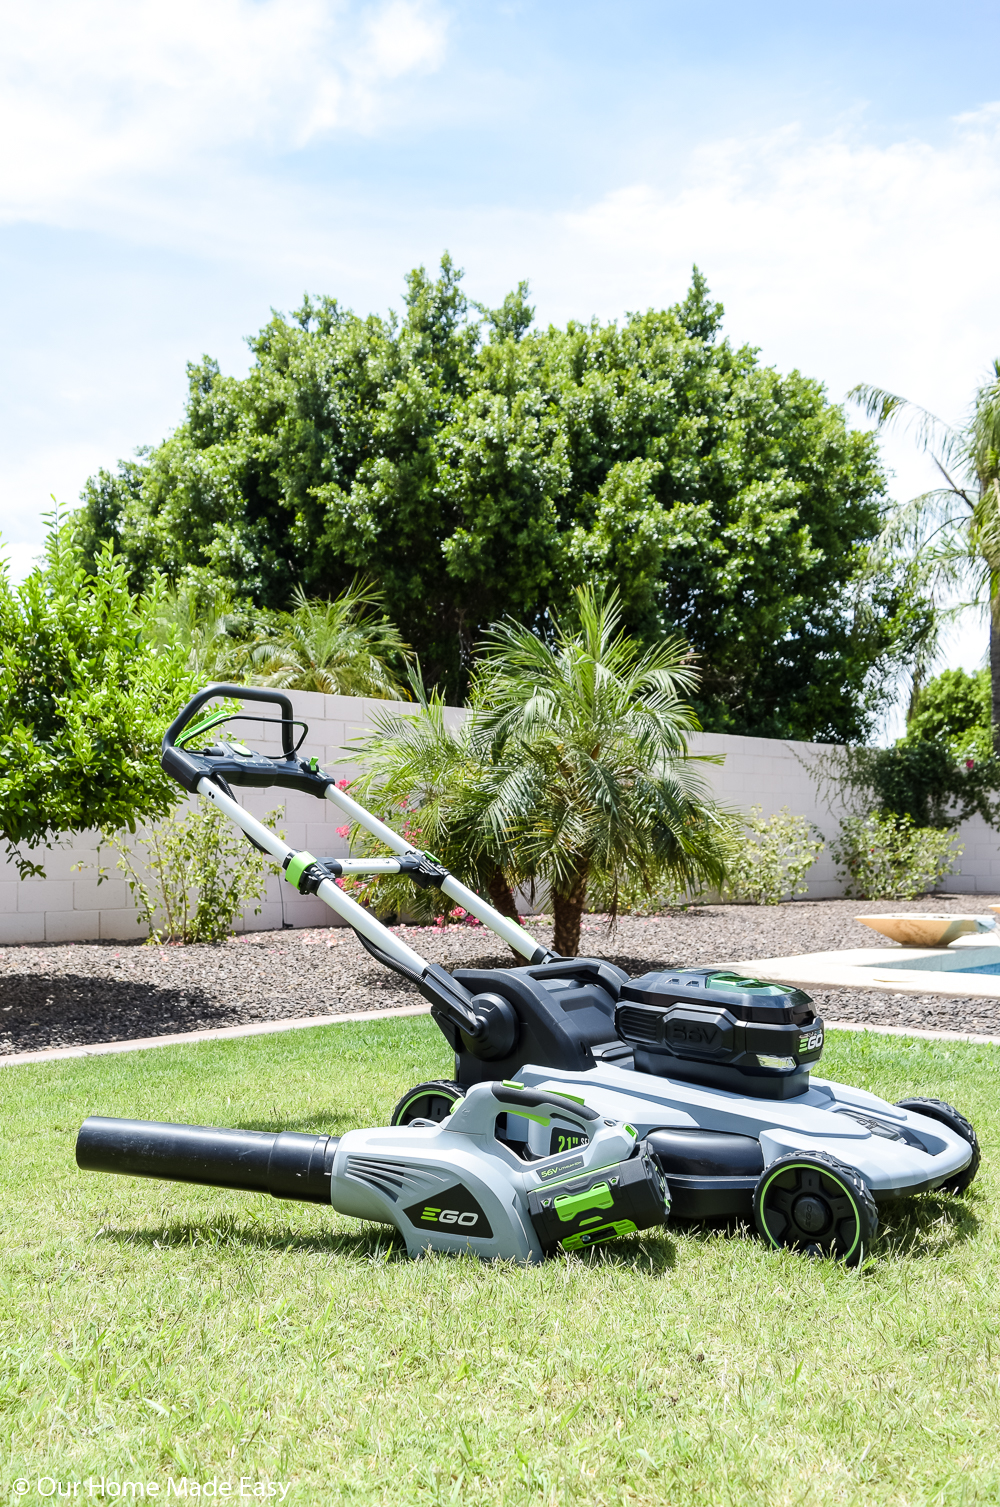 The battery powered EGO lawnmower is an efficient lawn maintenance tool